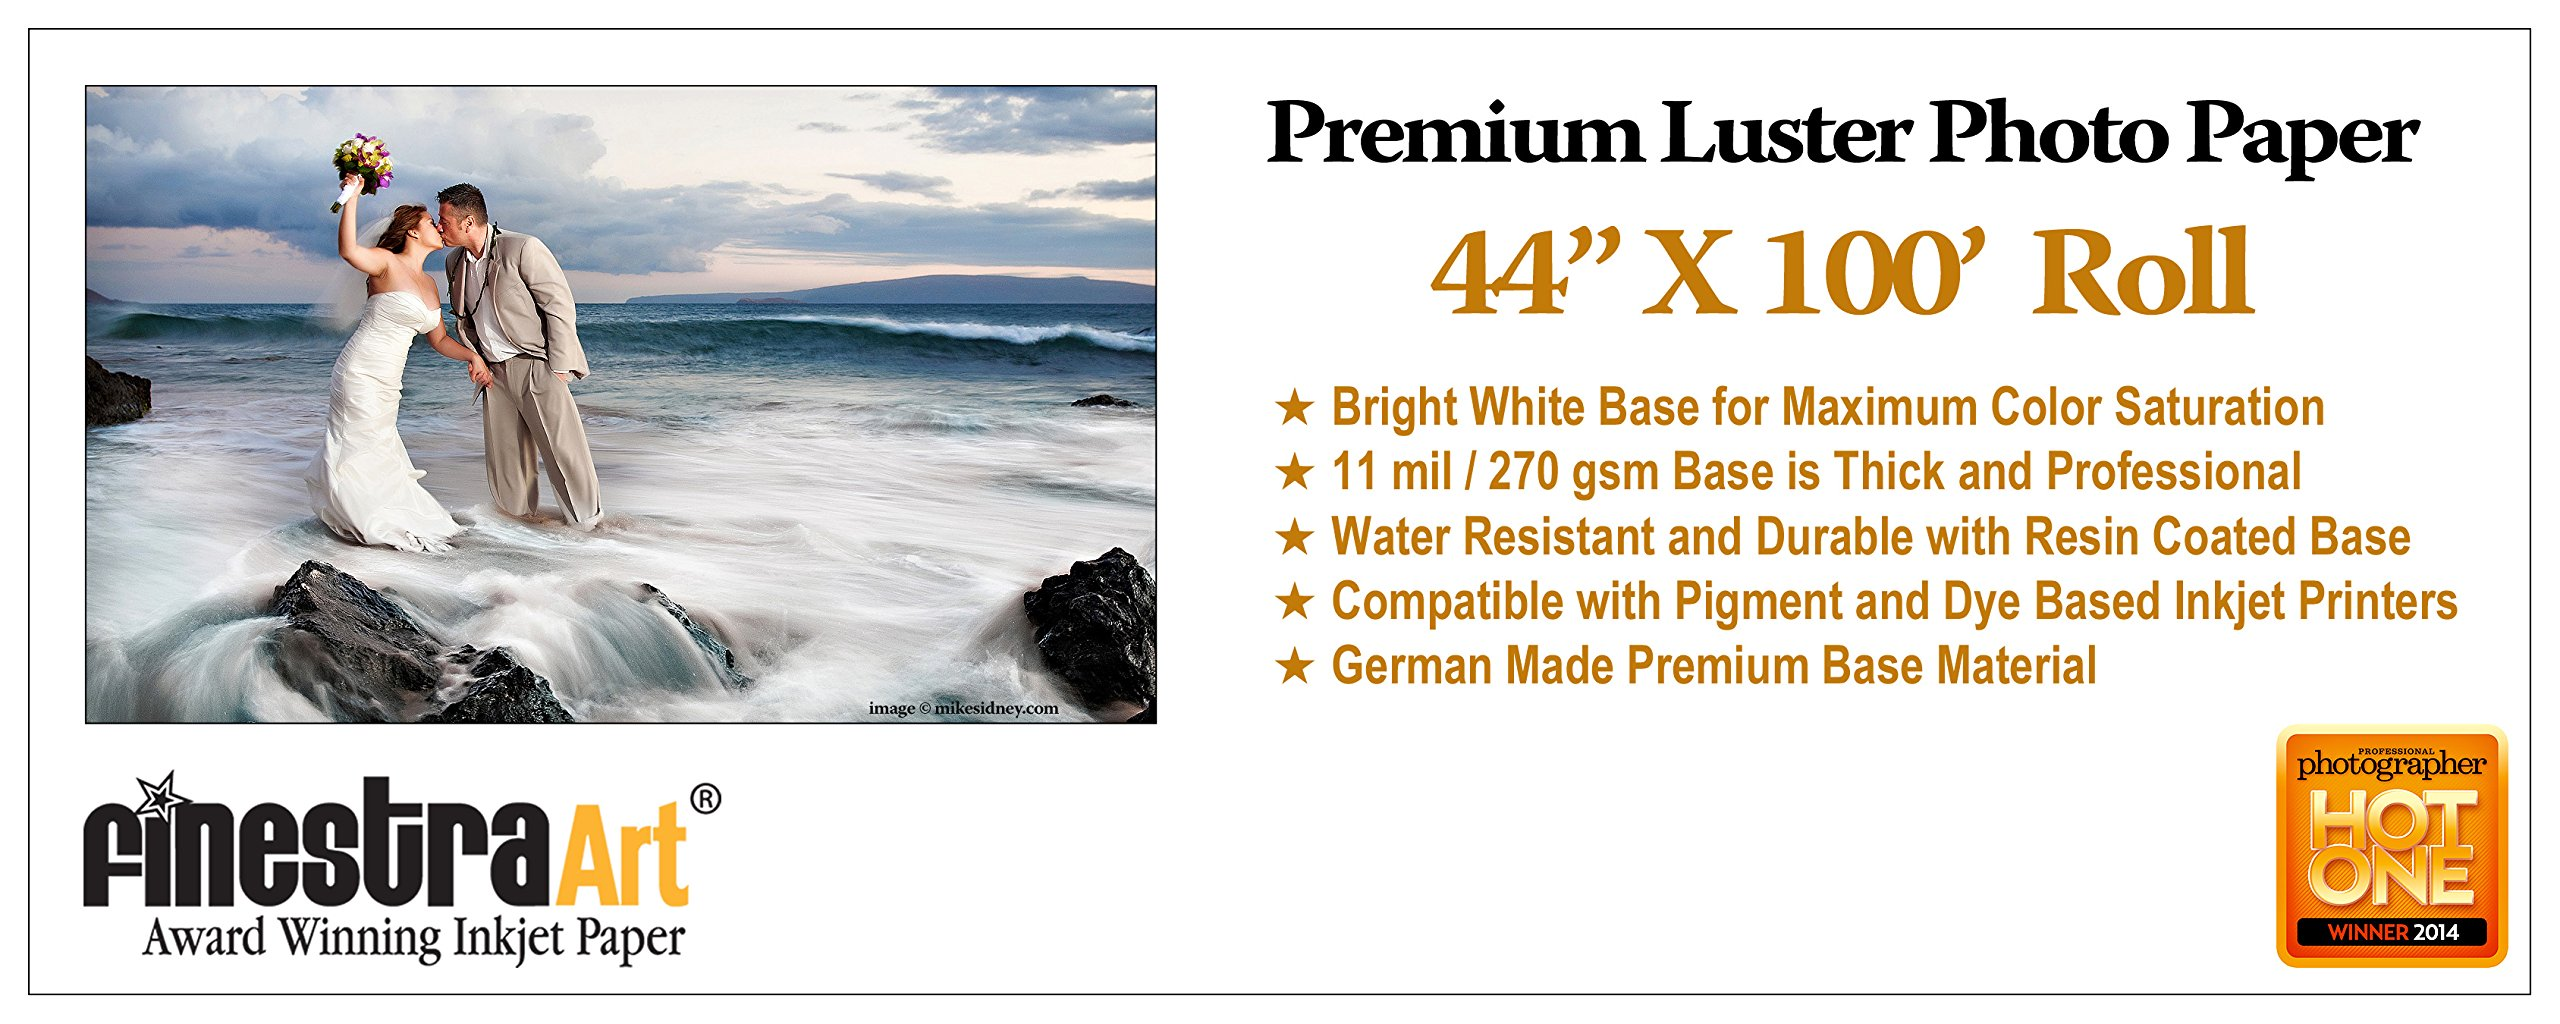 44'' X 100' Roll Premium Luster Inkjet Photo Paper [Office Product]